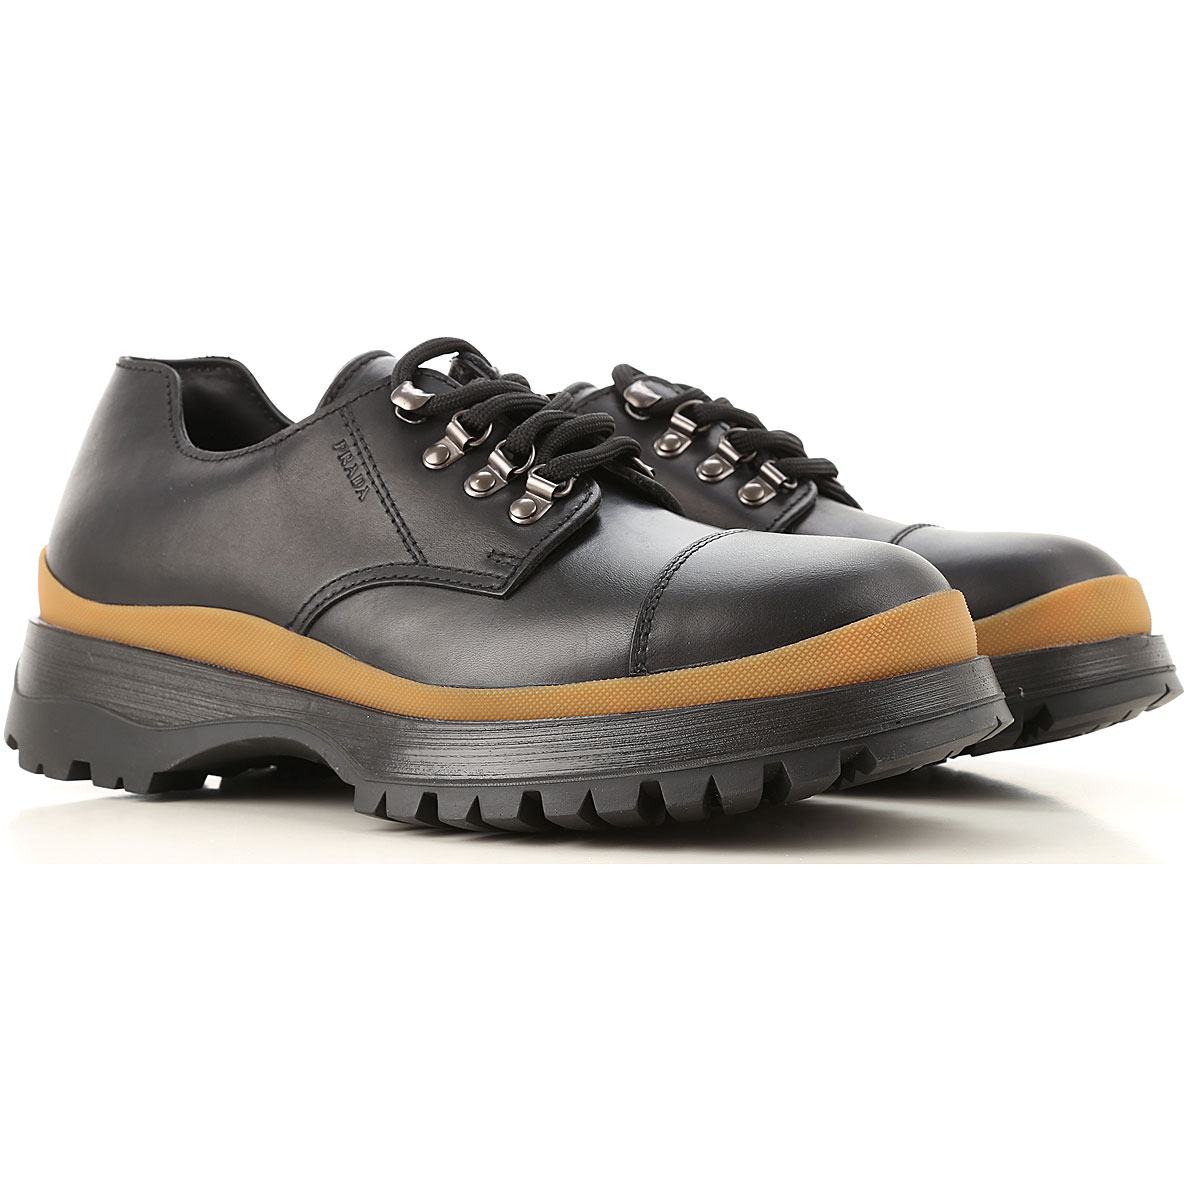 Prada Lace Up Shoes for Men Oxfords Derbies and Brogues On Sale SE - GOOFASH